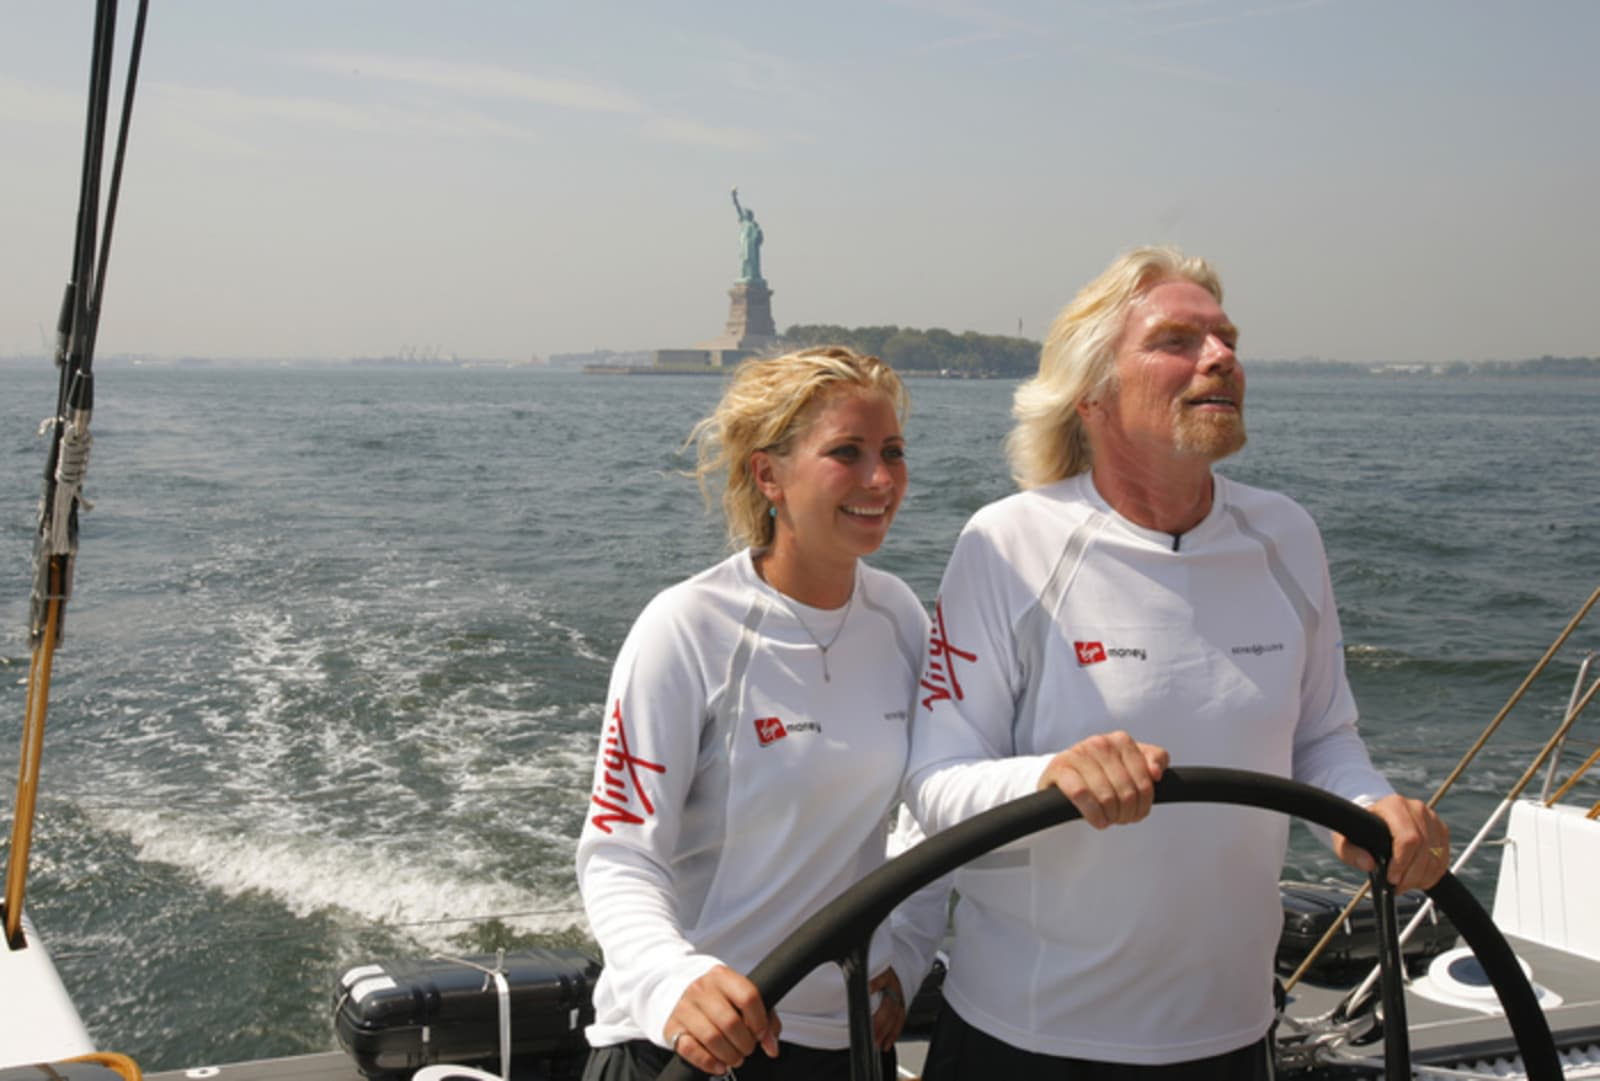 Richard and Holly Branson sailing boat in Virgin Money Sail Challenge. Statue of Liberty in background.